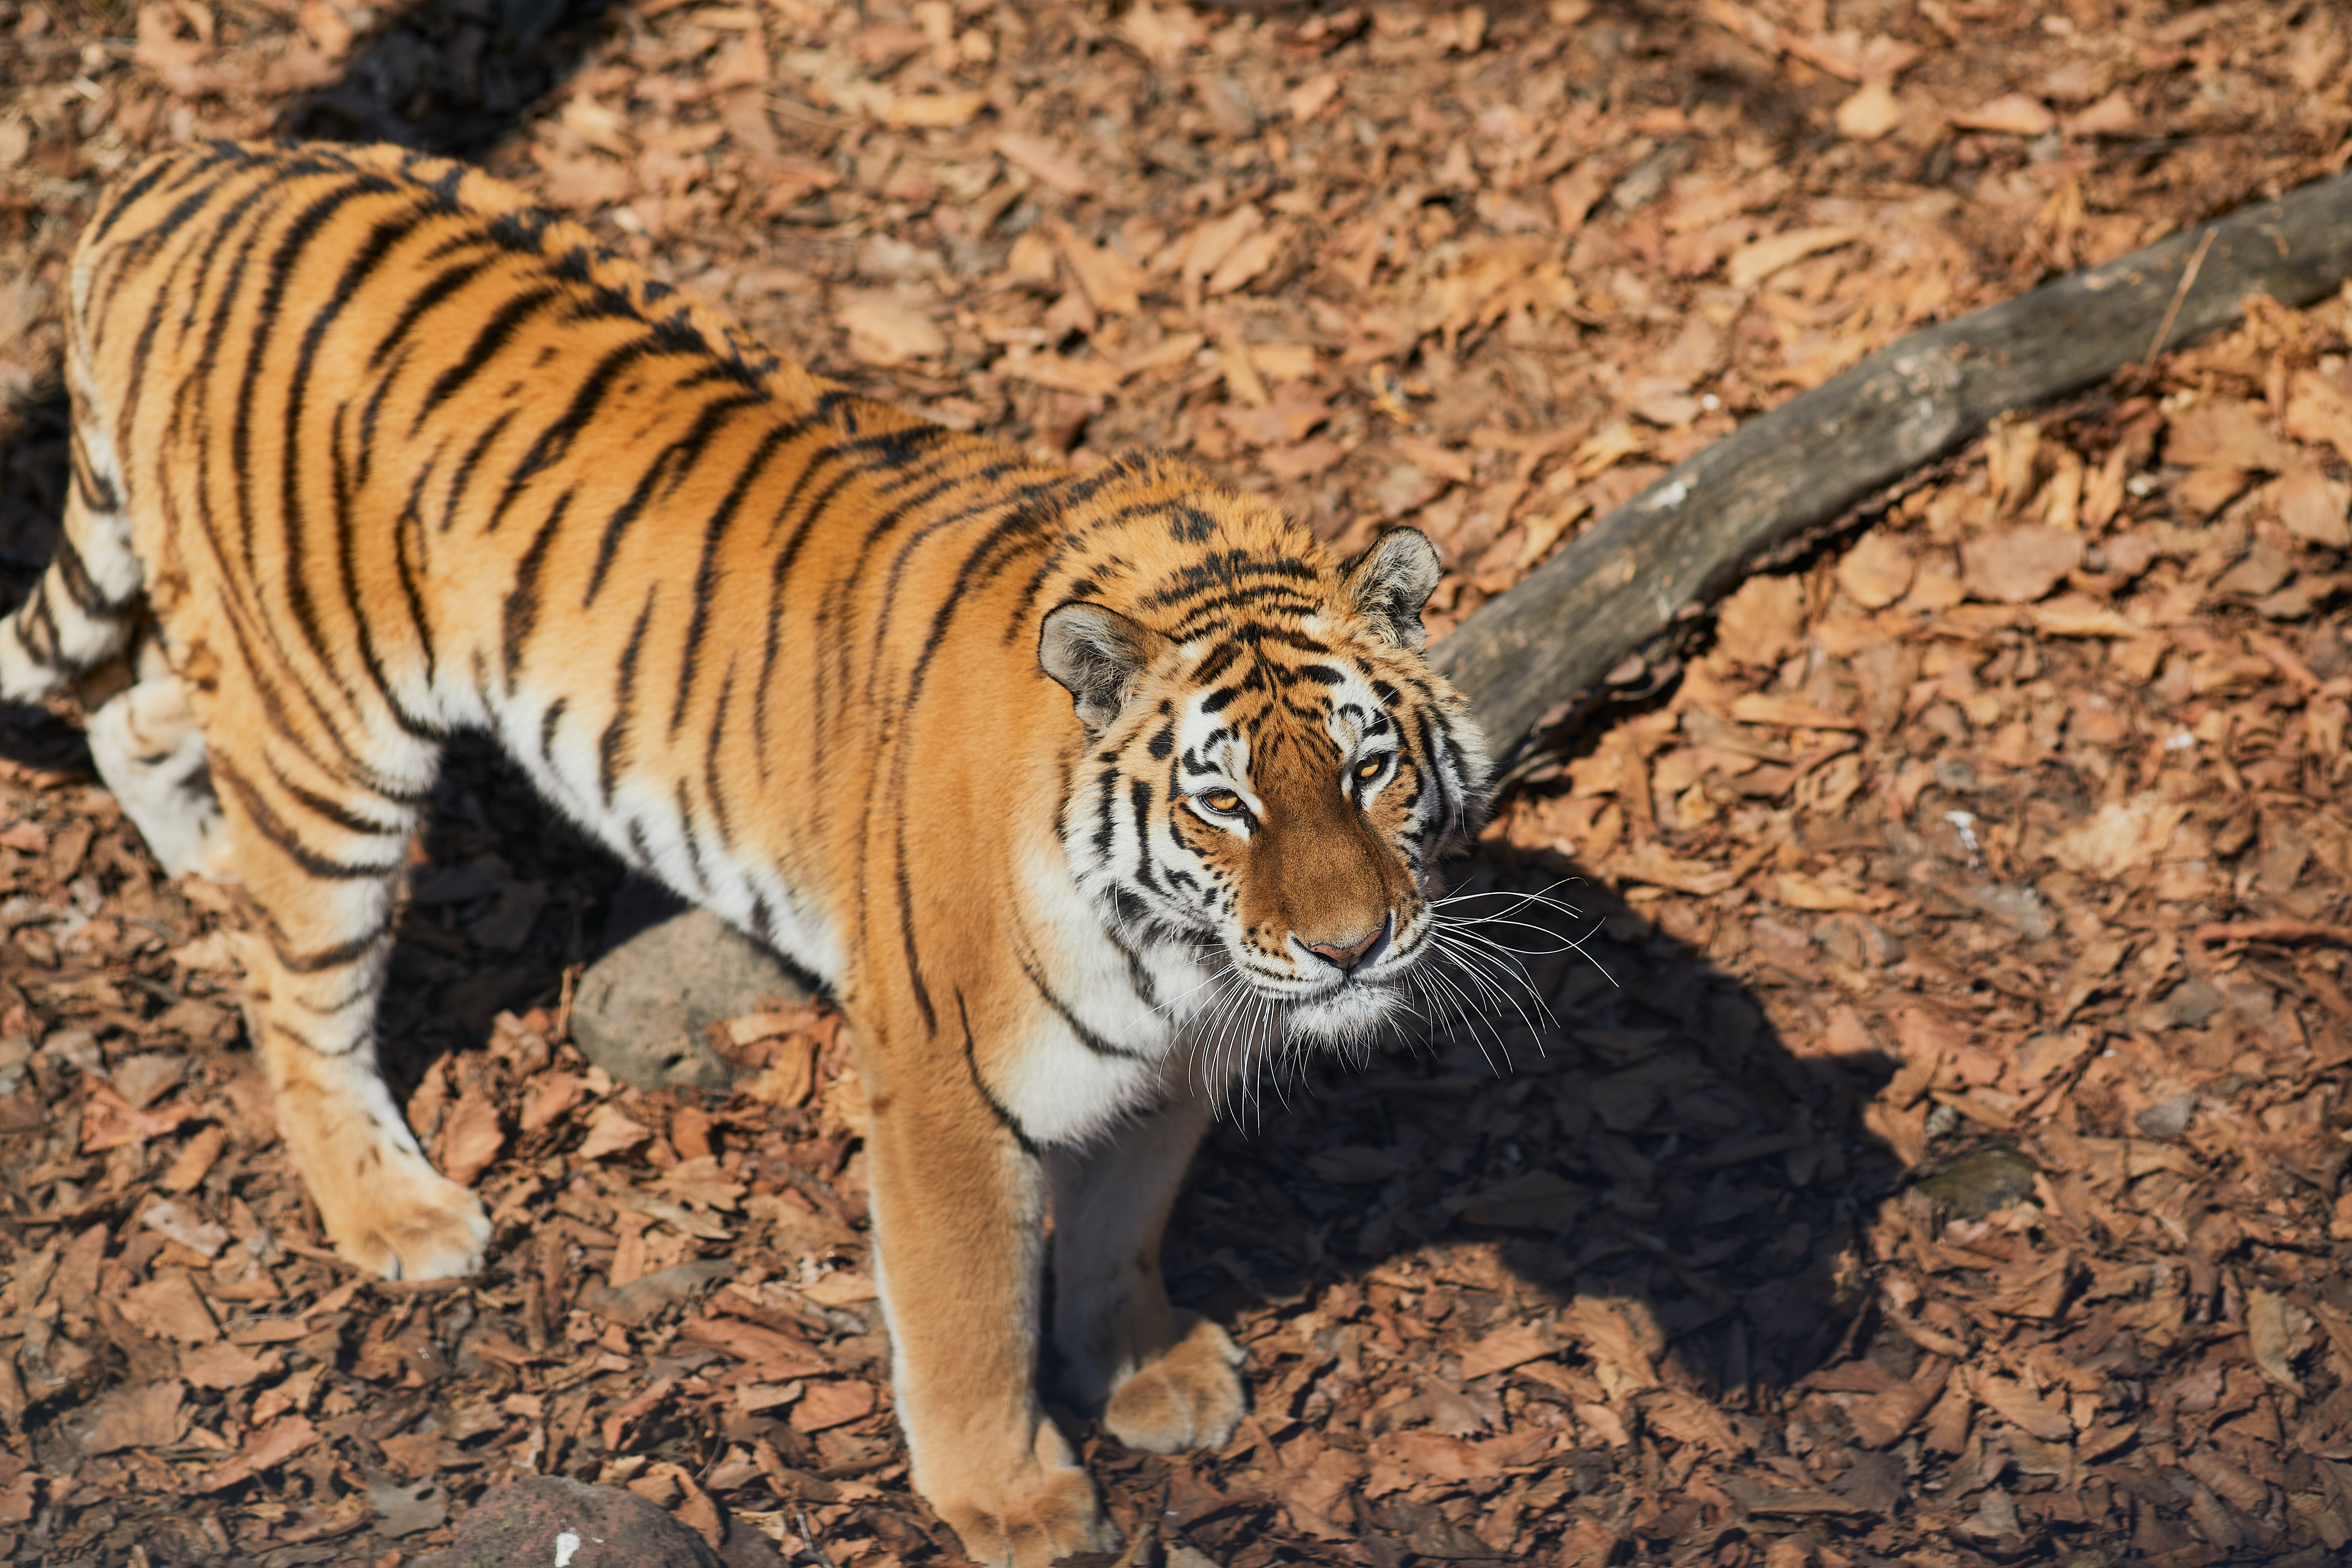 86992 download wallpaper Animals, Tiger, Animal, Predator, Brown, Striped screensavers and pictures for free